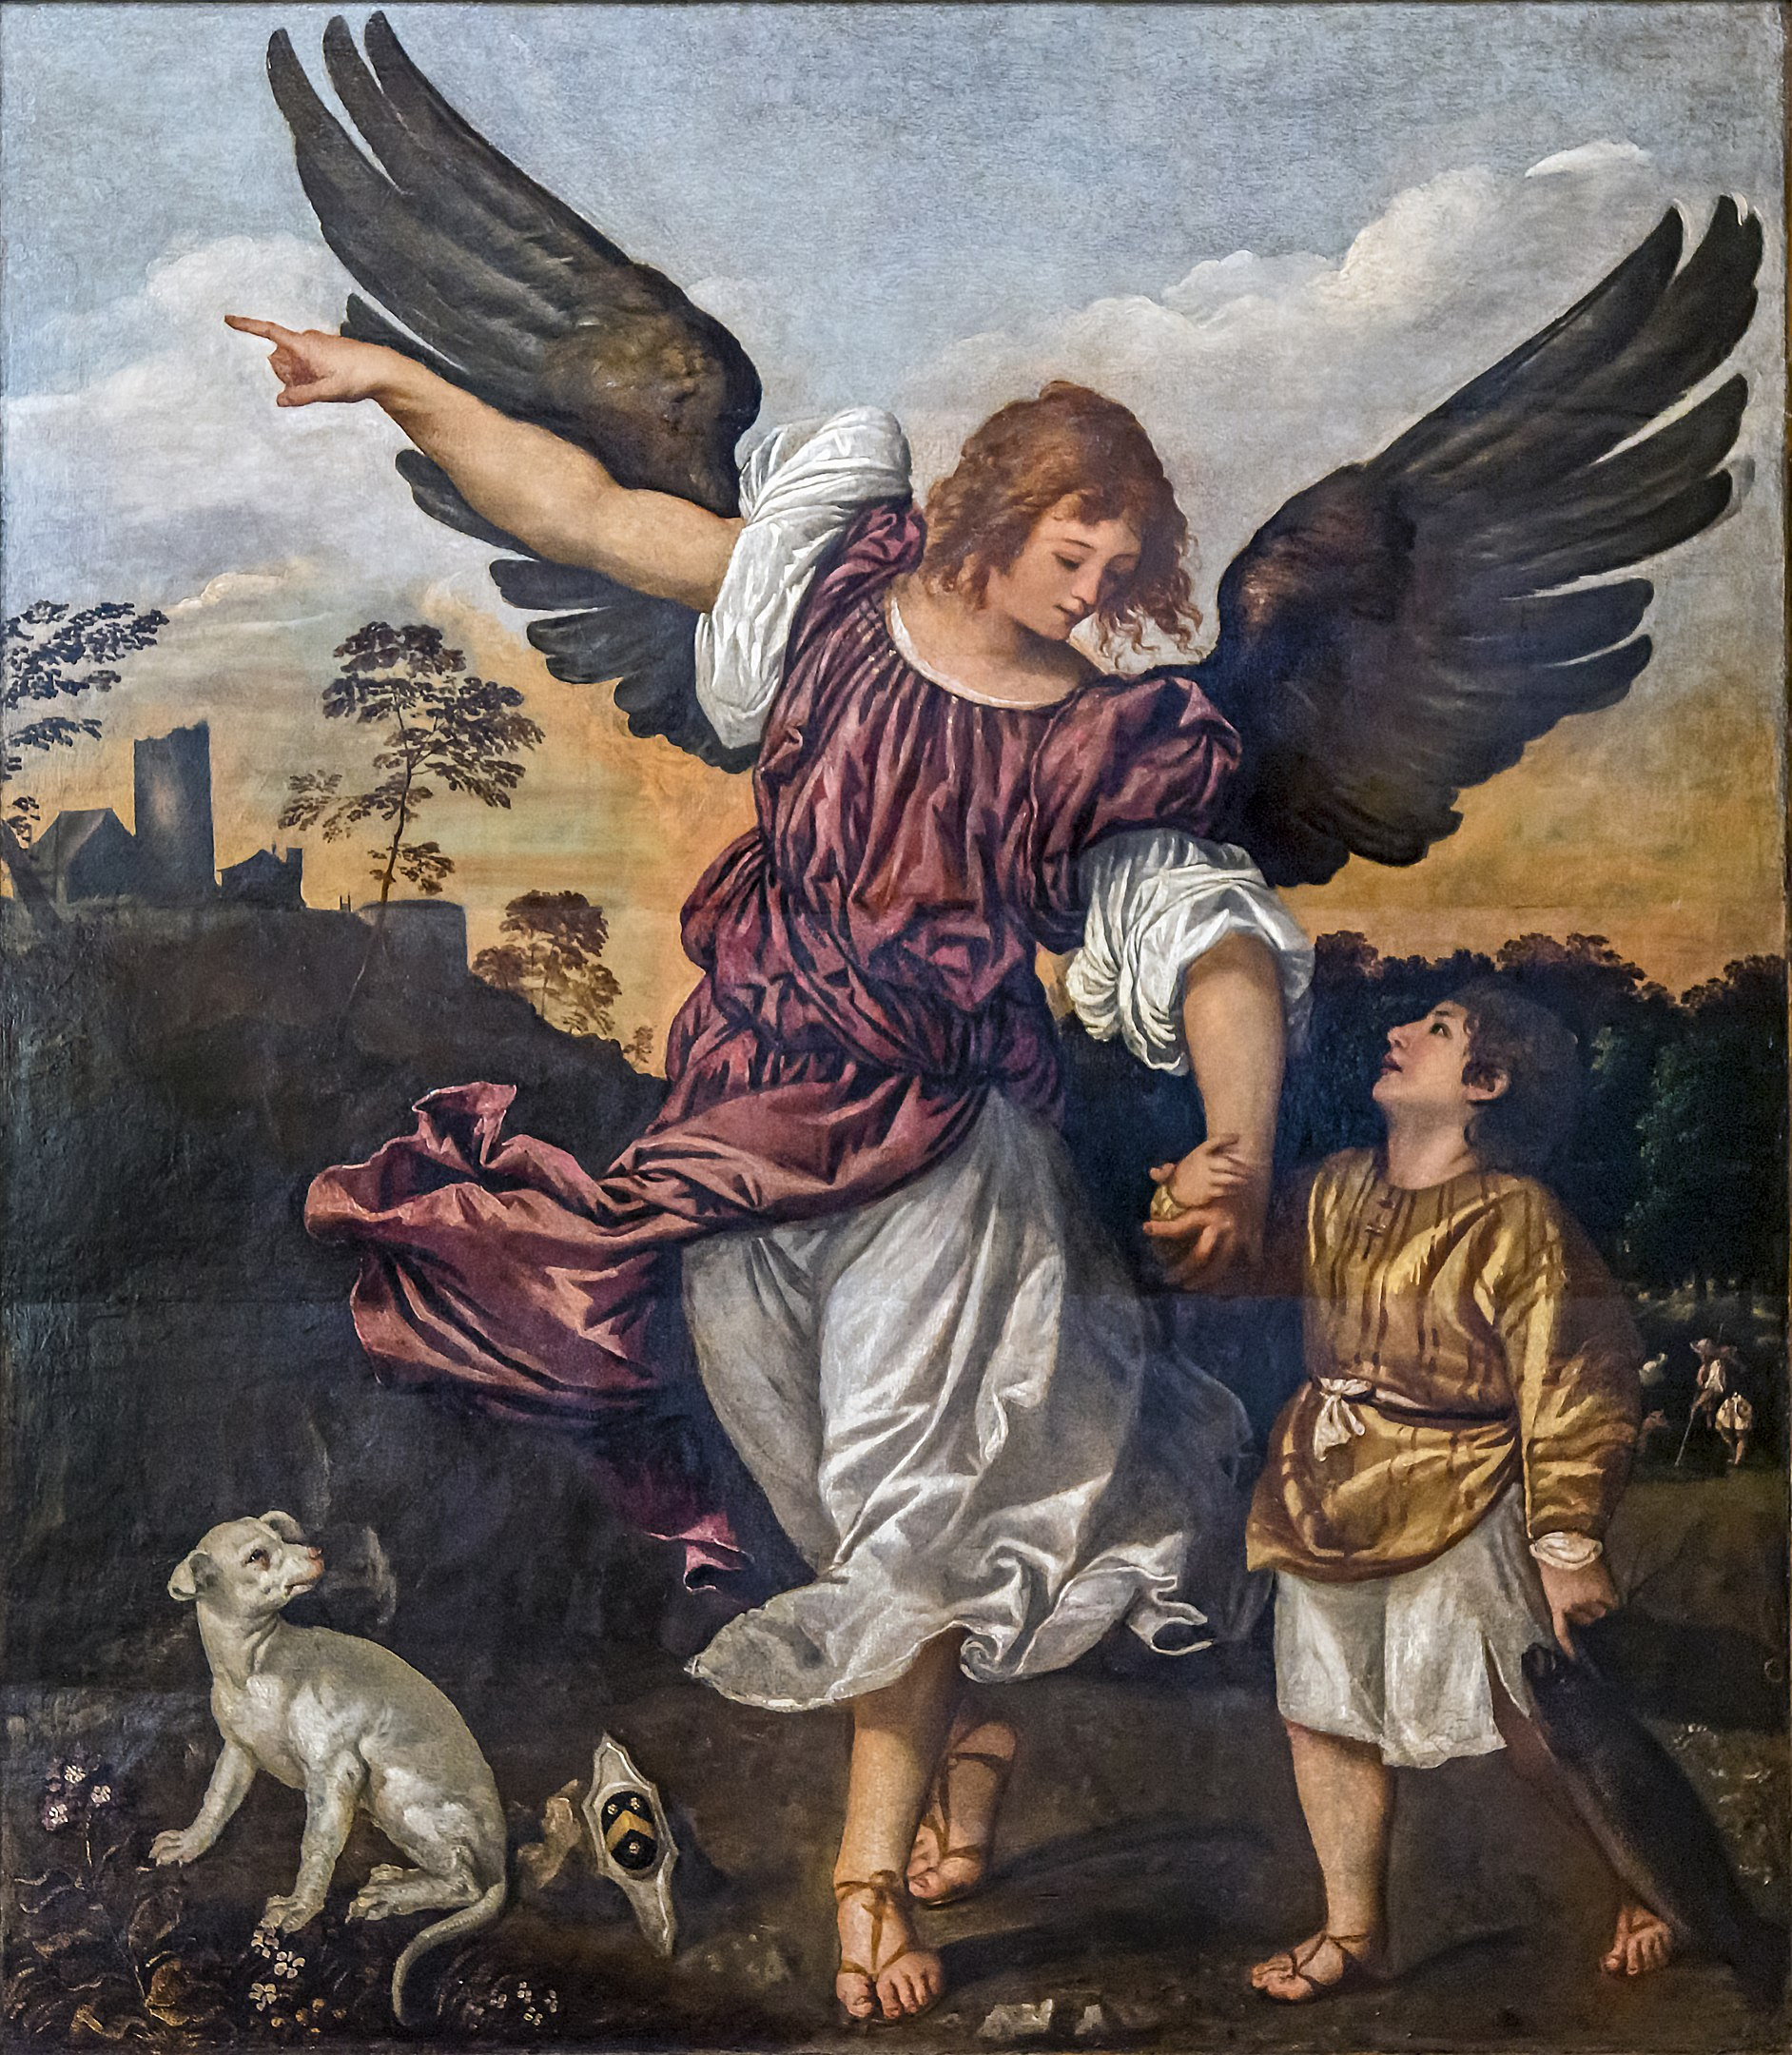 Venice - Accademia Galleries: Archangel Raphael and Tobias, by Titian